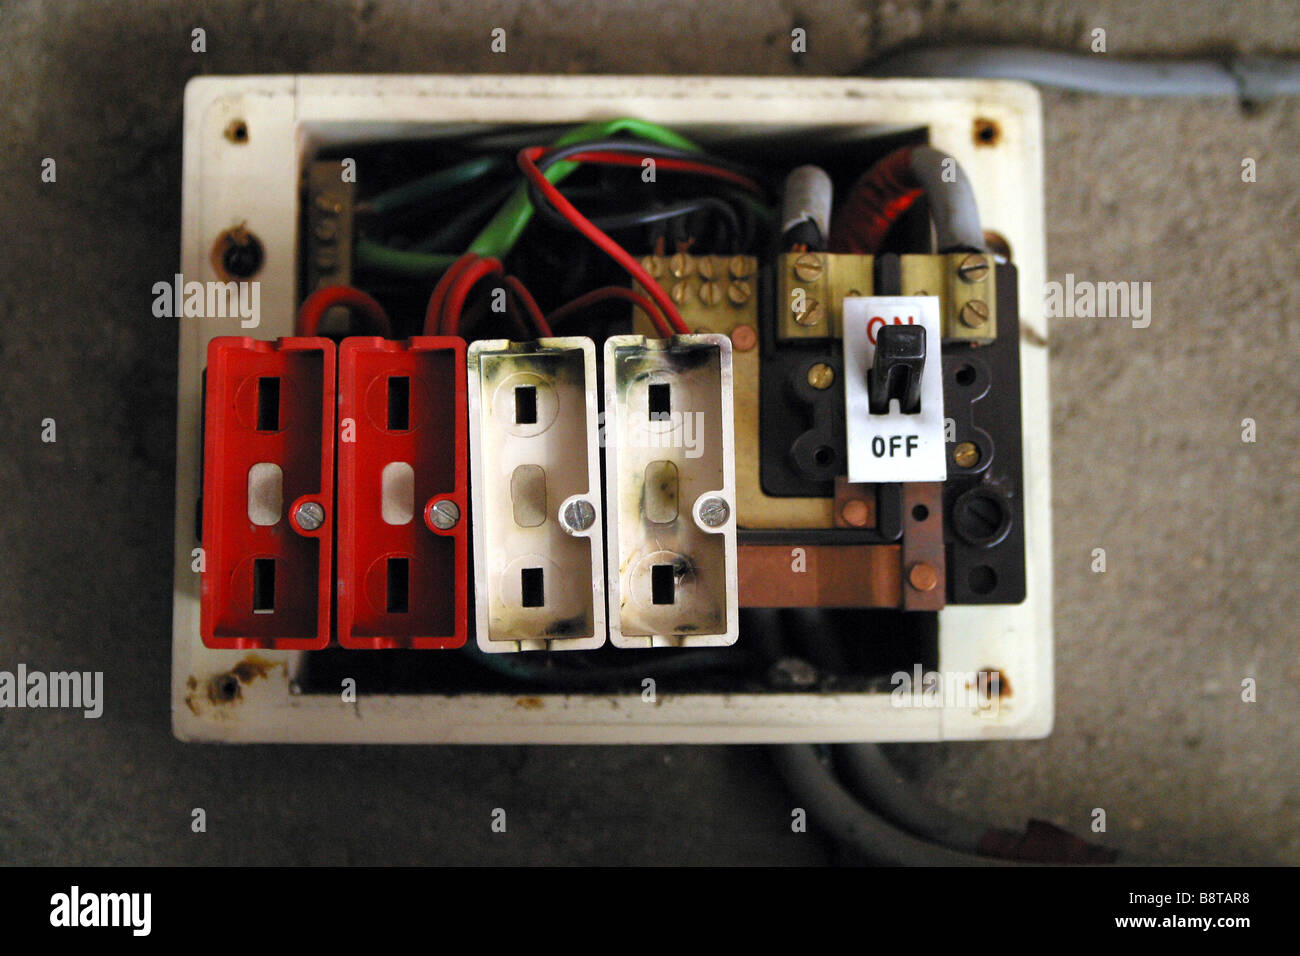 replacing old fuse box electrical wiring diagram old front door fuses for fuse  box house simple